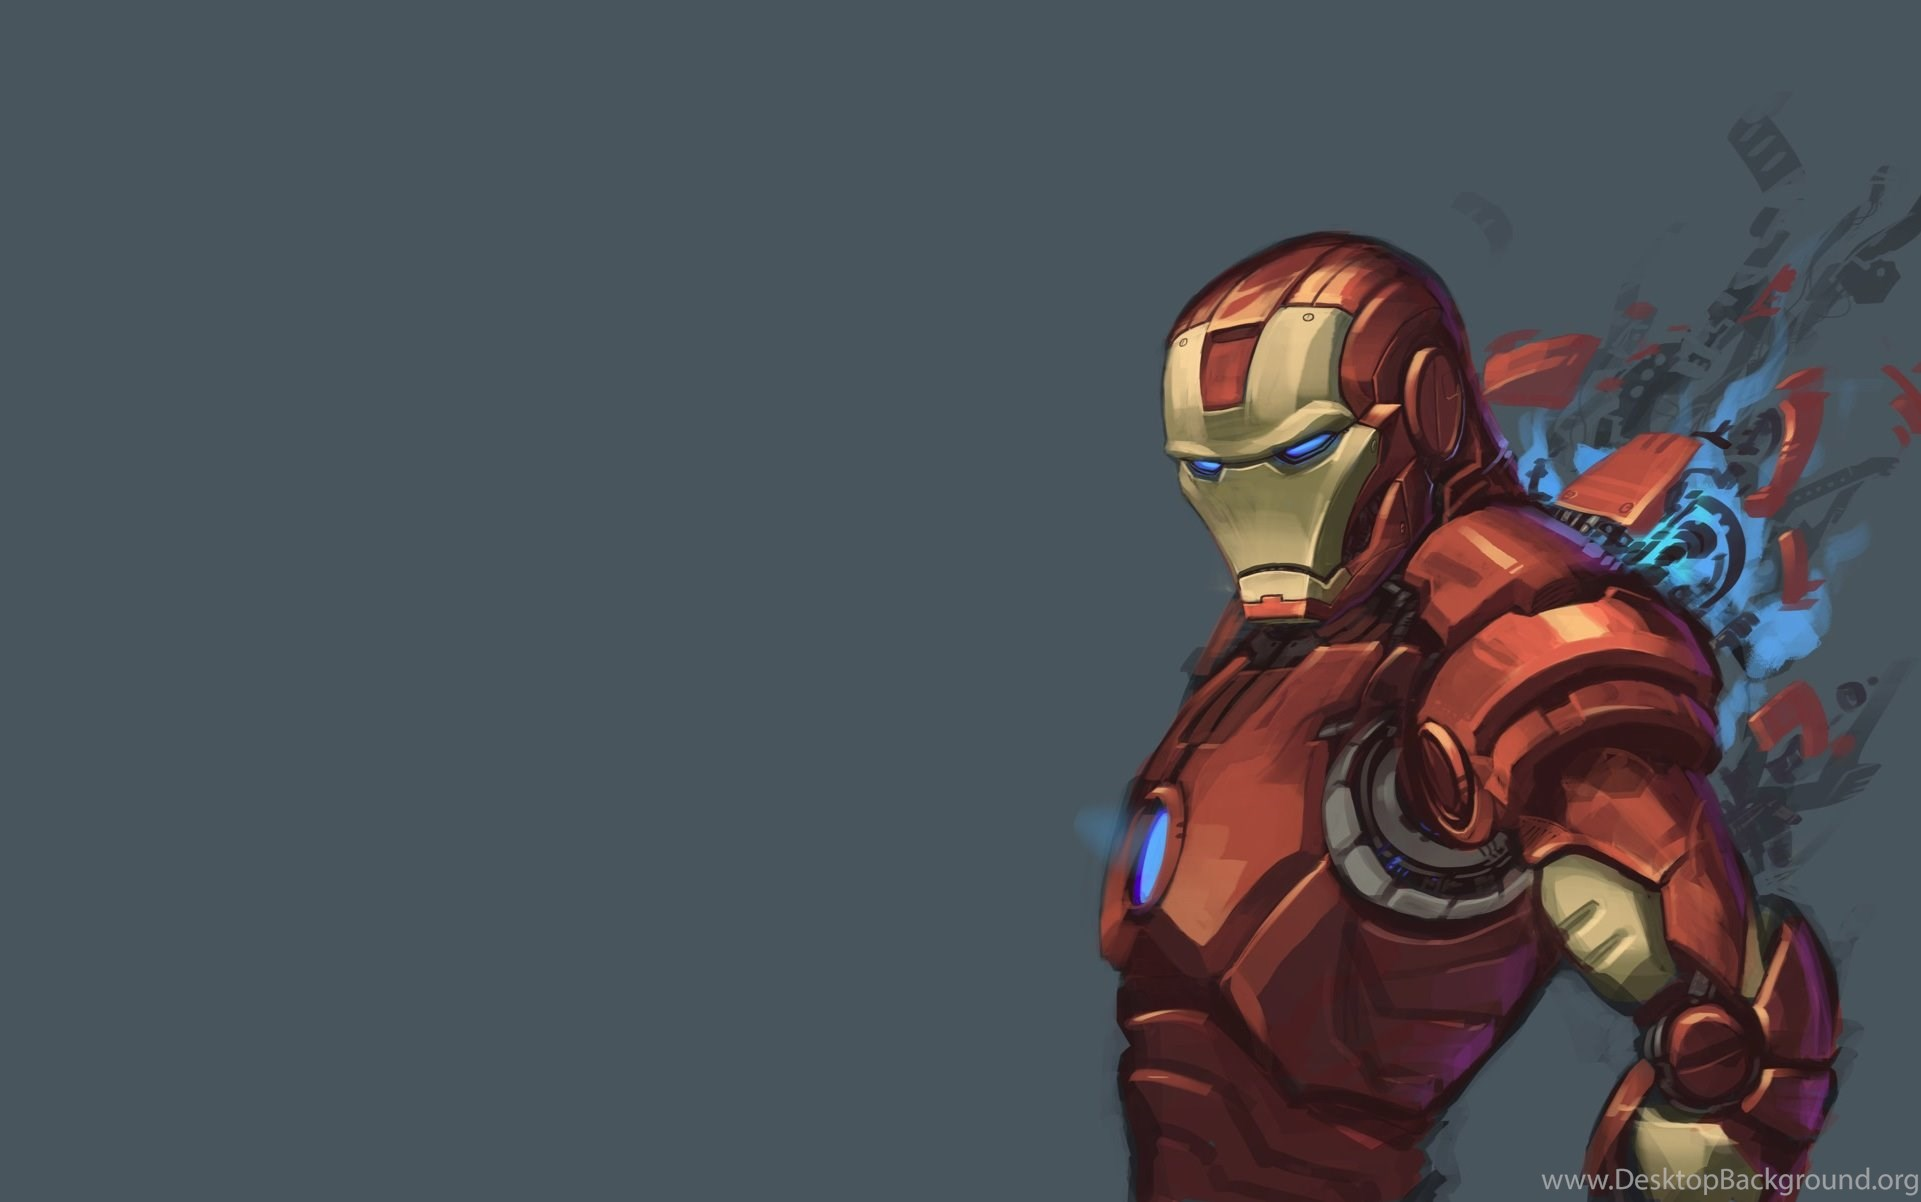 iron man ic original wallpaper hd 1244—933